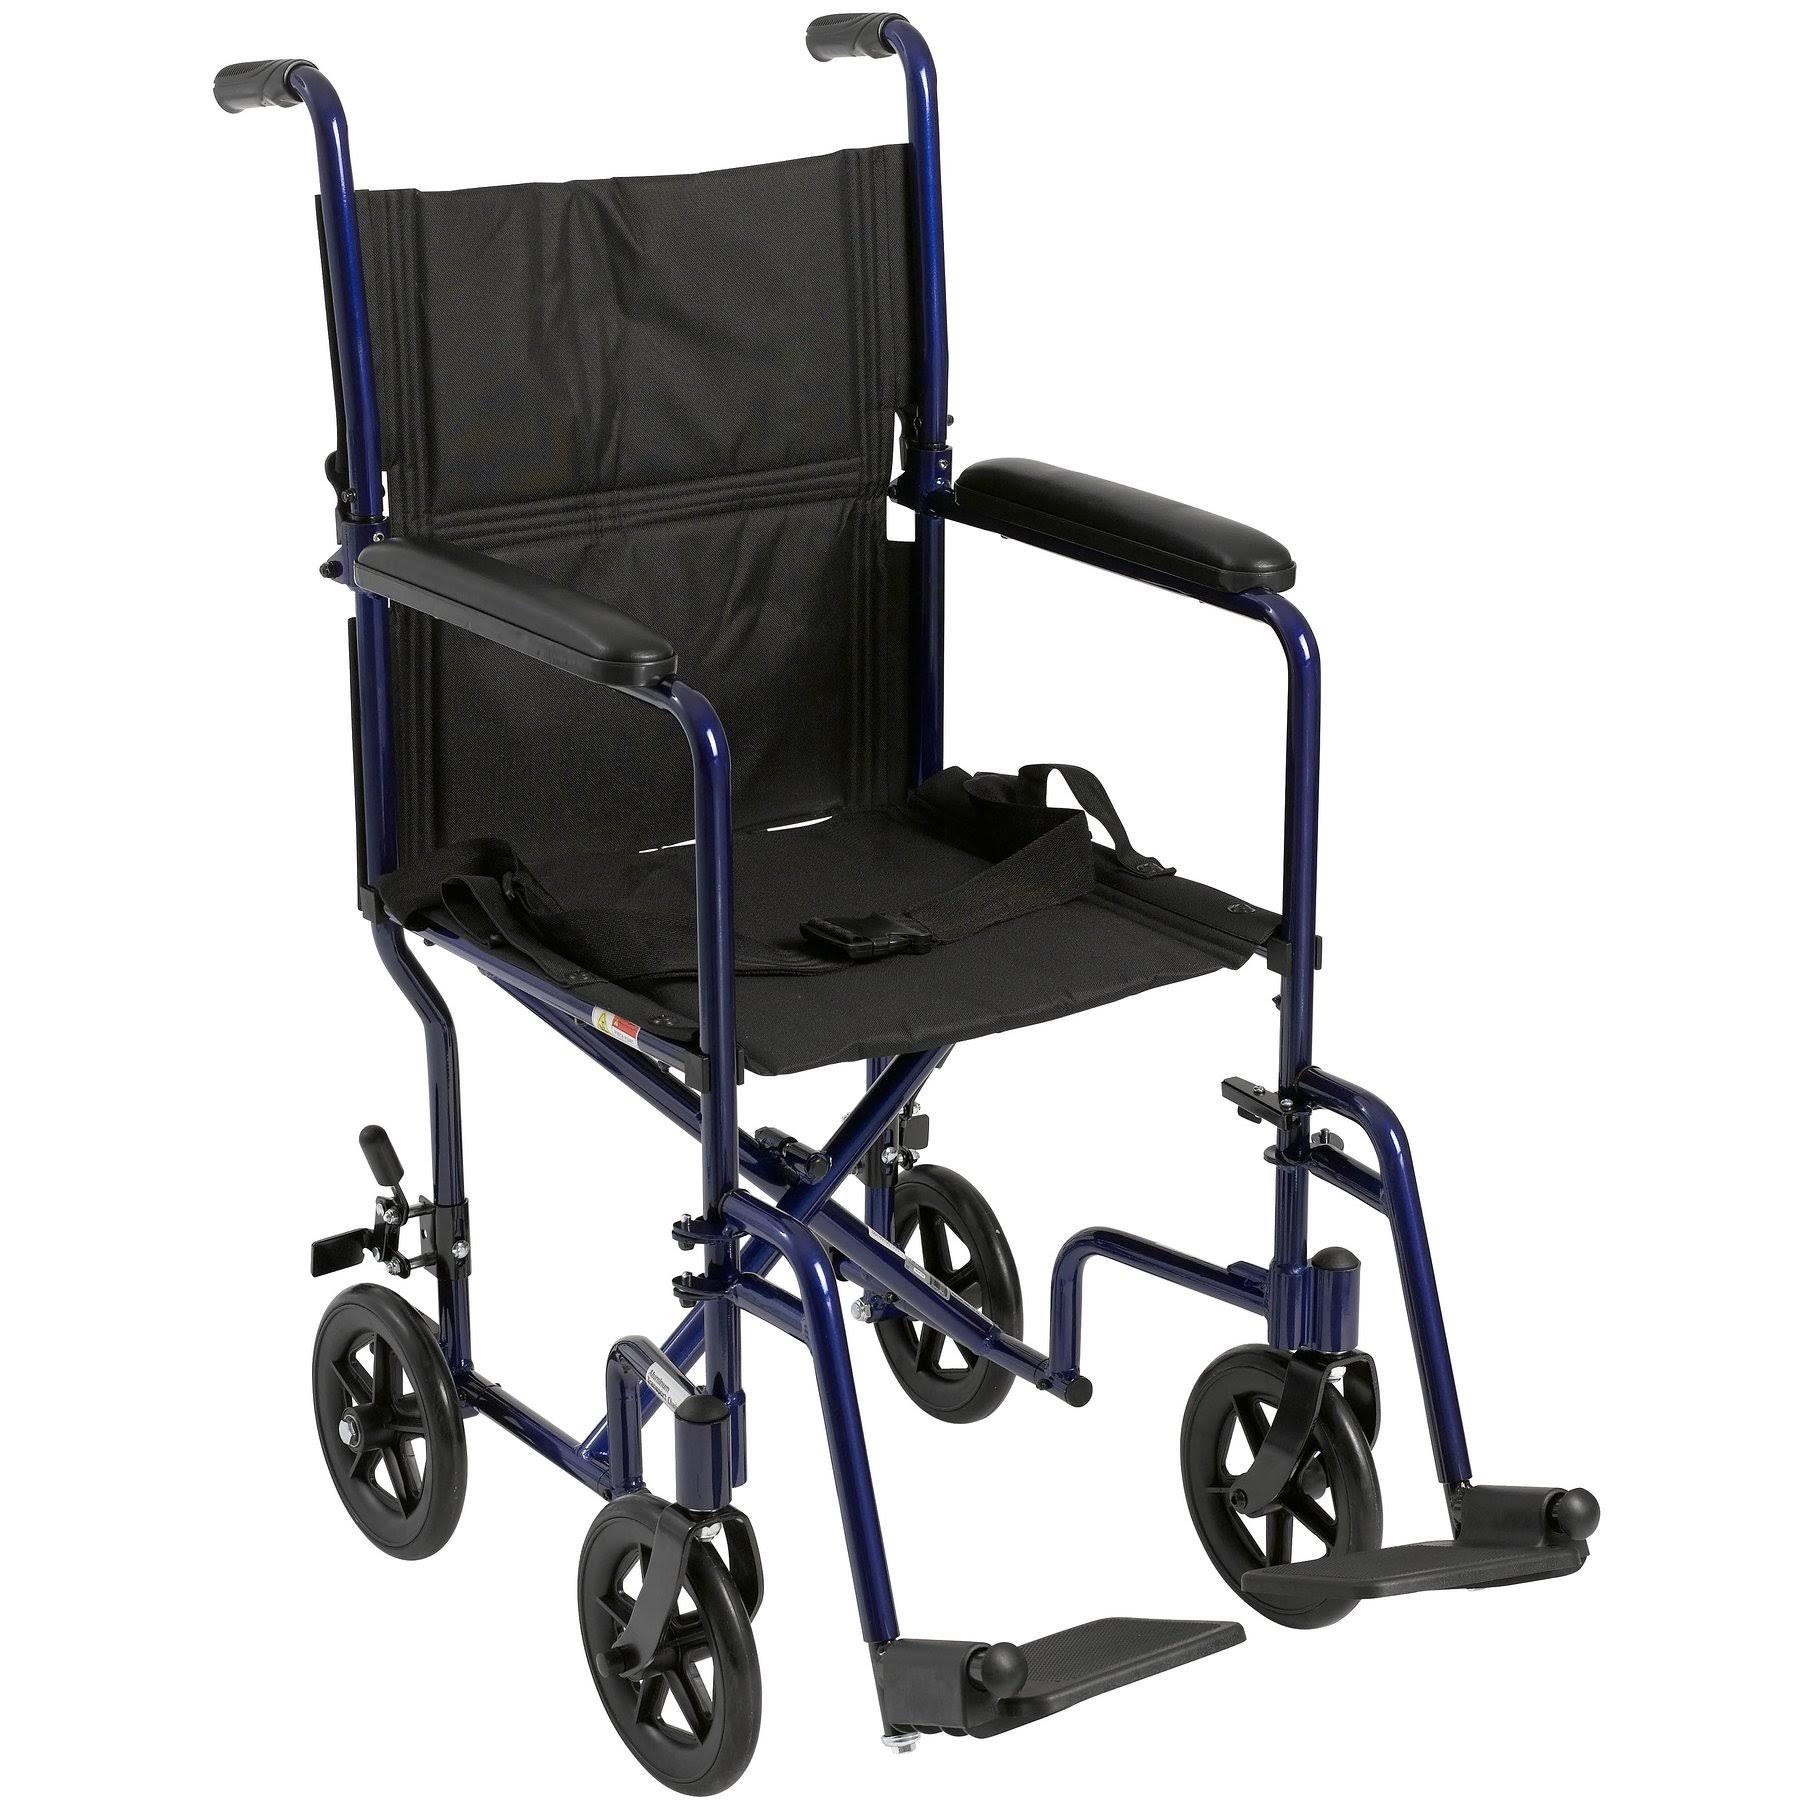 Drive ATC19-BL Lightweight Transport Wheelchair - Blue